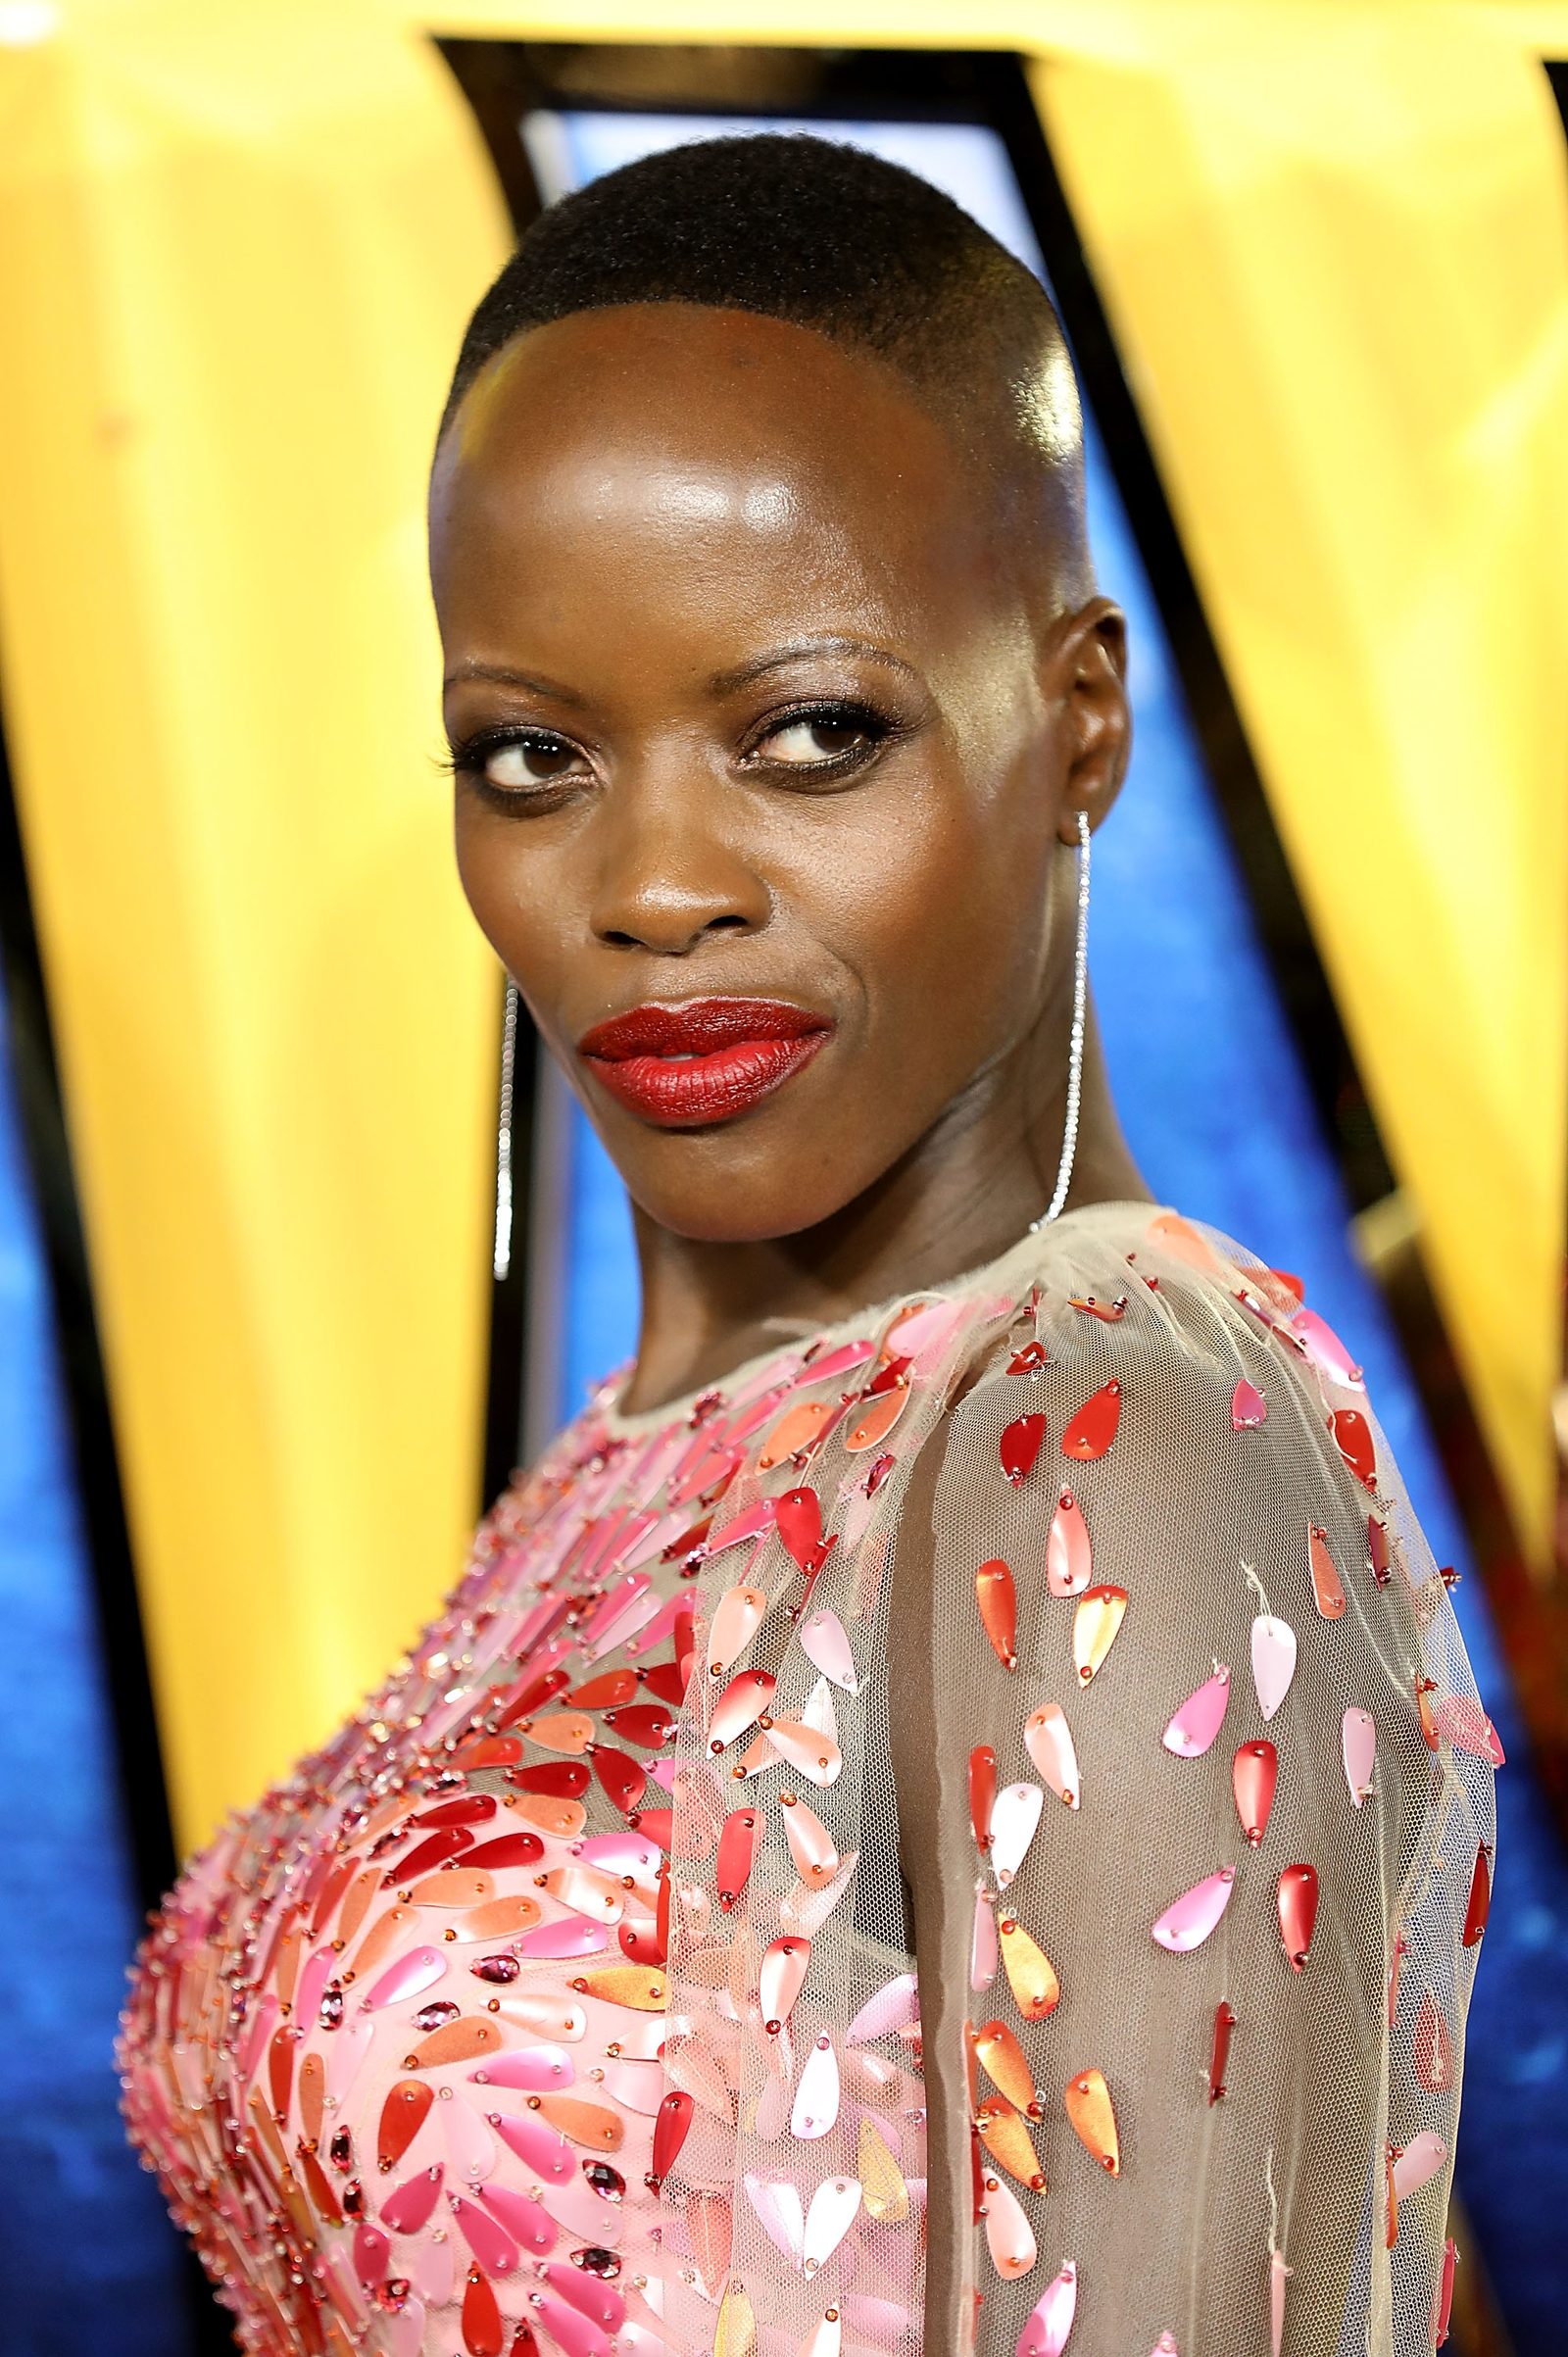 Florence Kasumba attends the European premiere of Black Panther in London Feb. 8, 2018. (Tim P. Whitby/Tim P. Whitby/Getty Images)